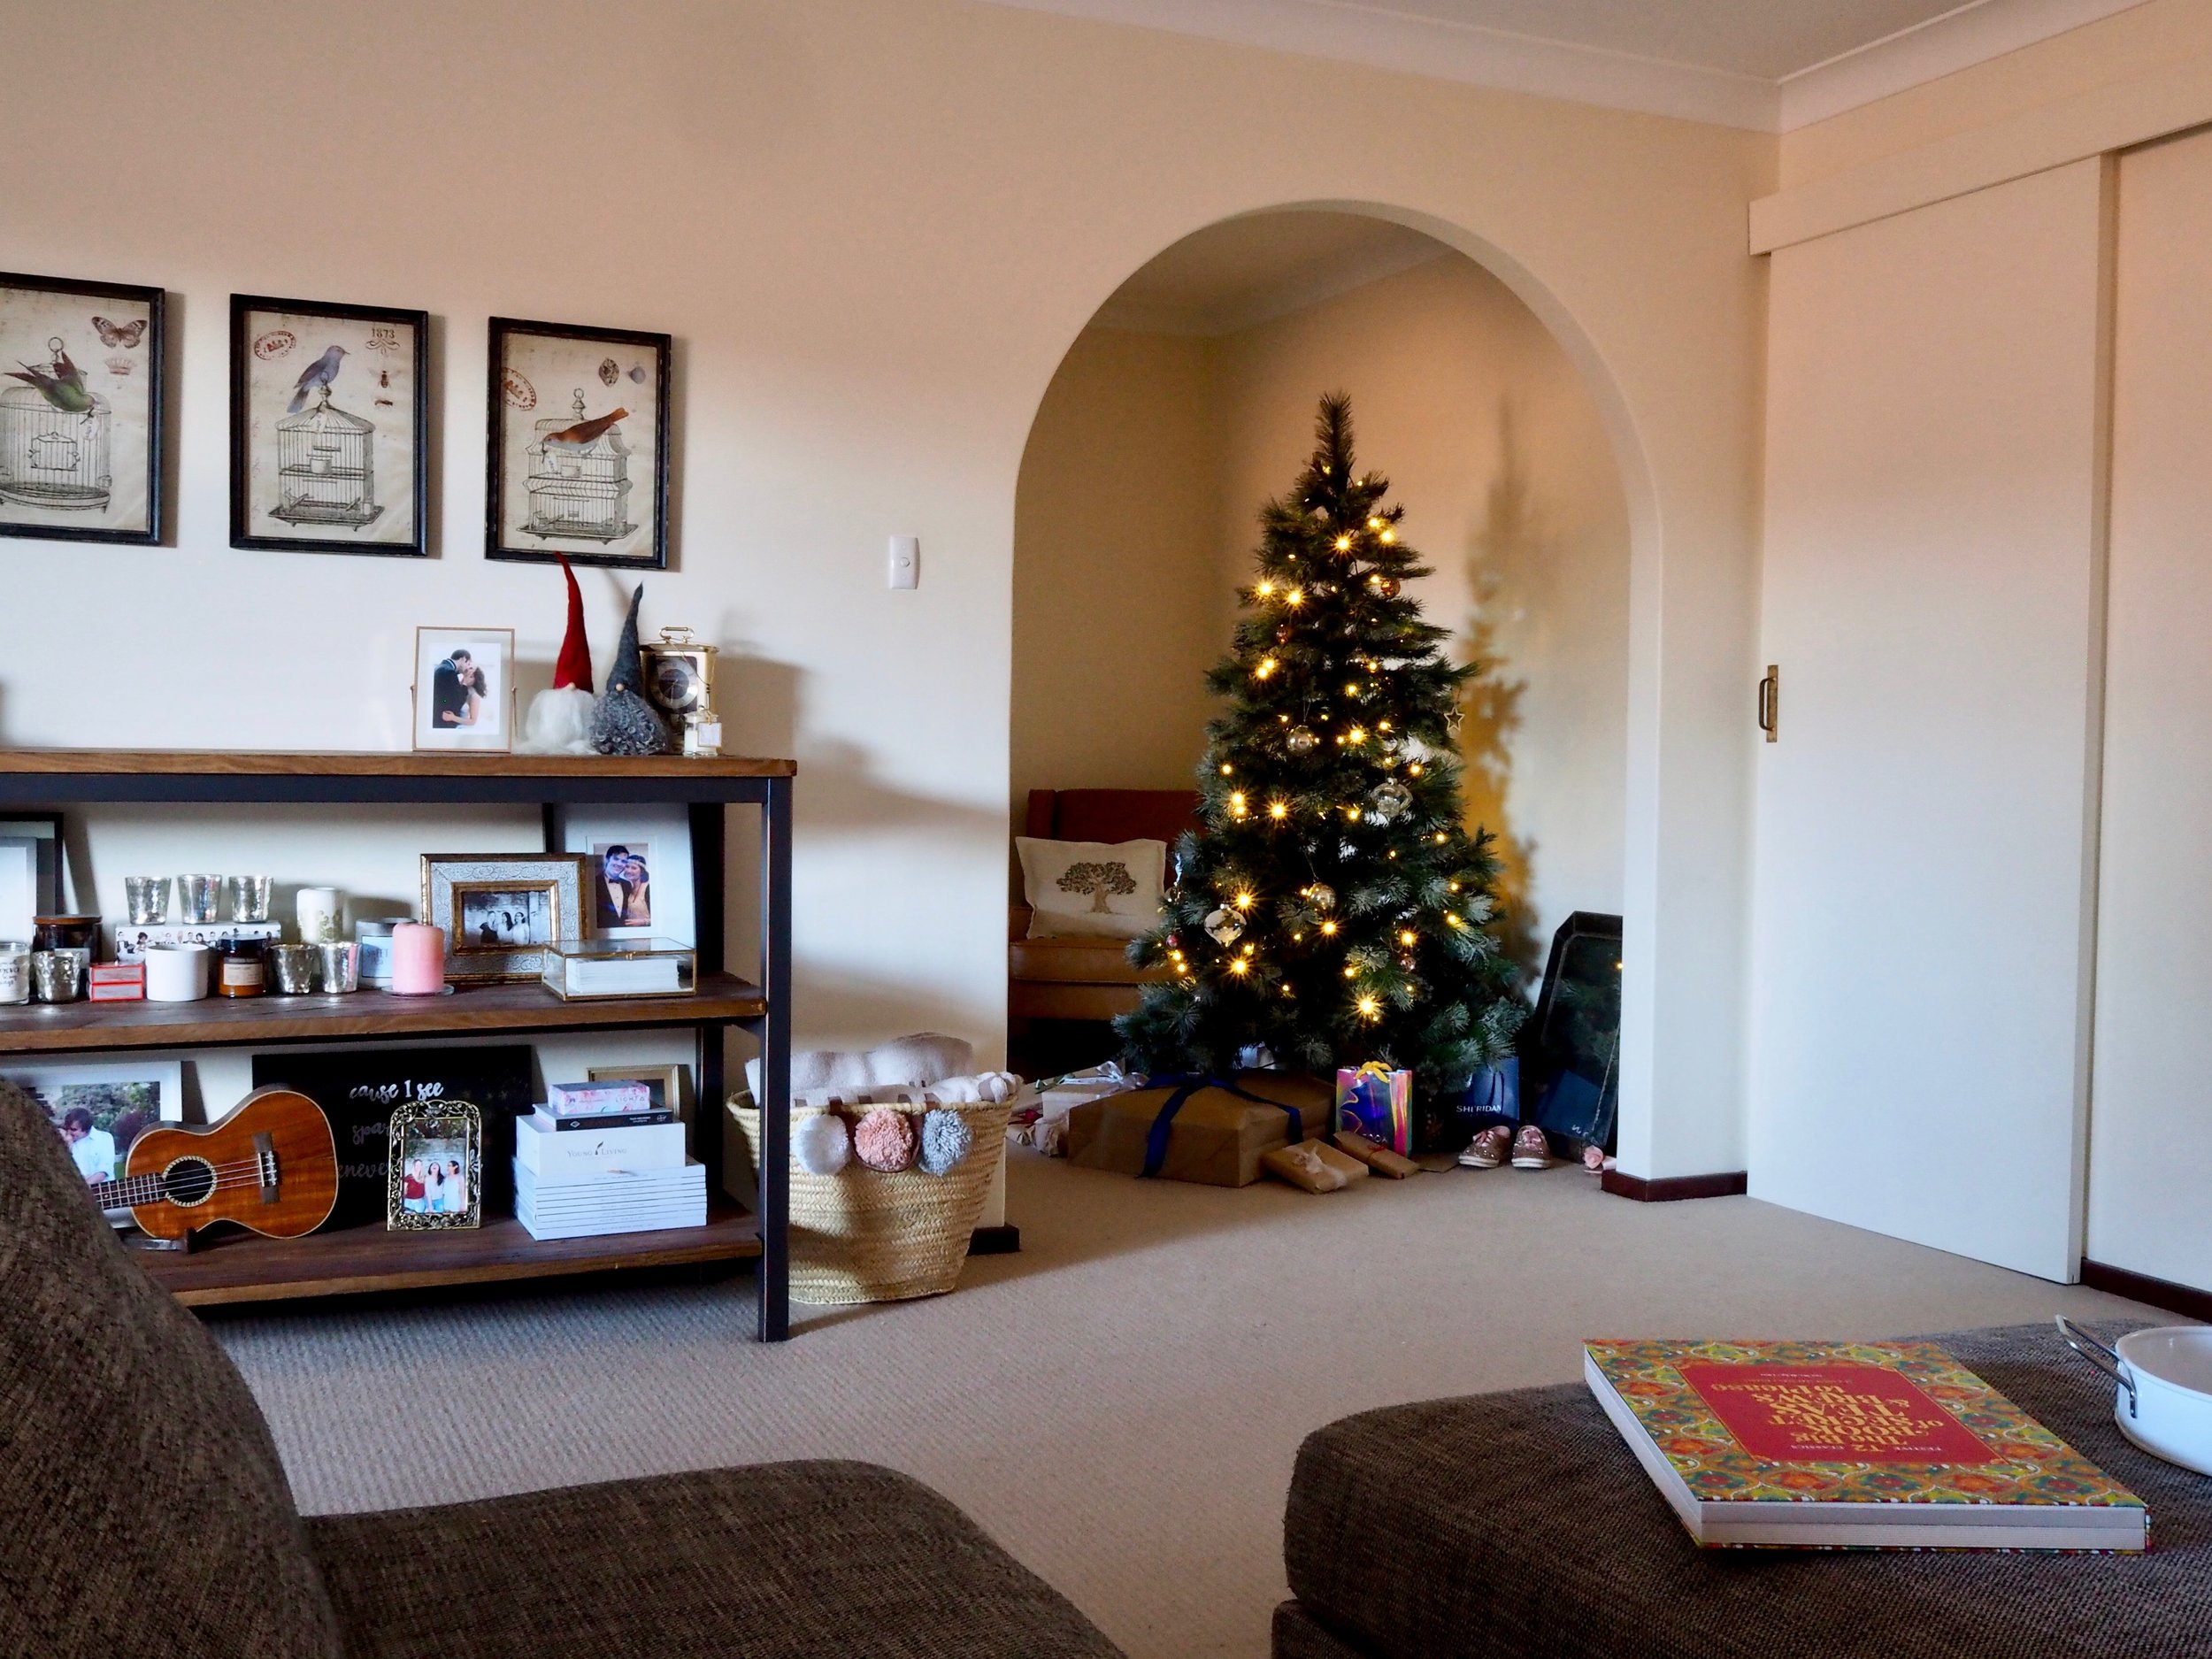 Simple Christmas Decor Ideas And Tips For A Small Apartment Lauren Natalia